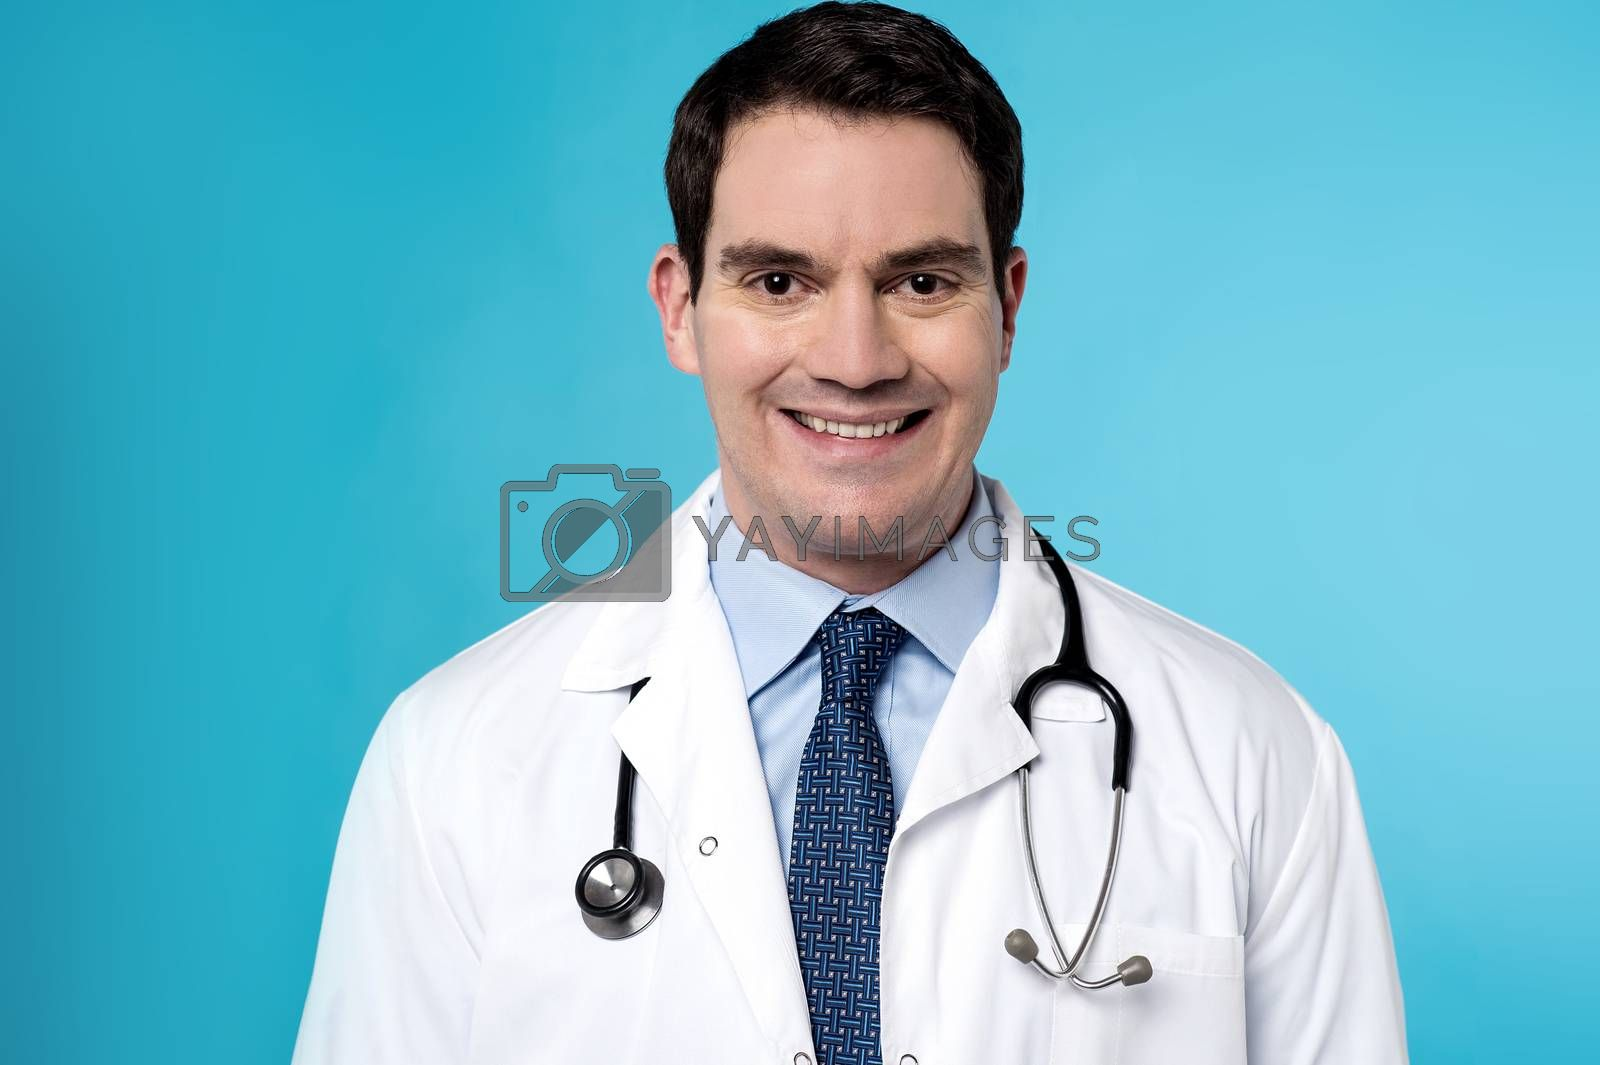 Male physician with stethoscope around his neck